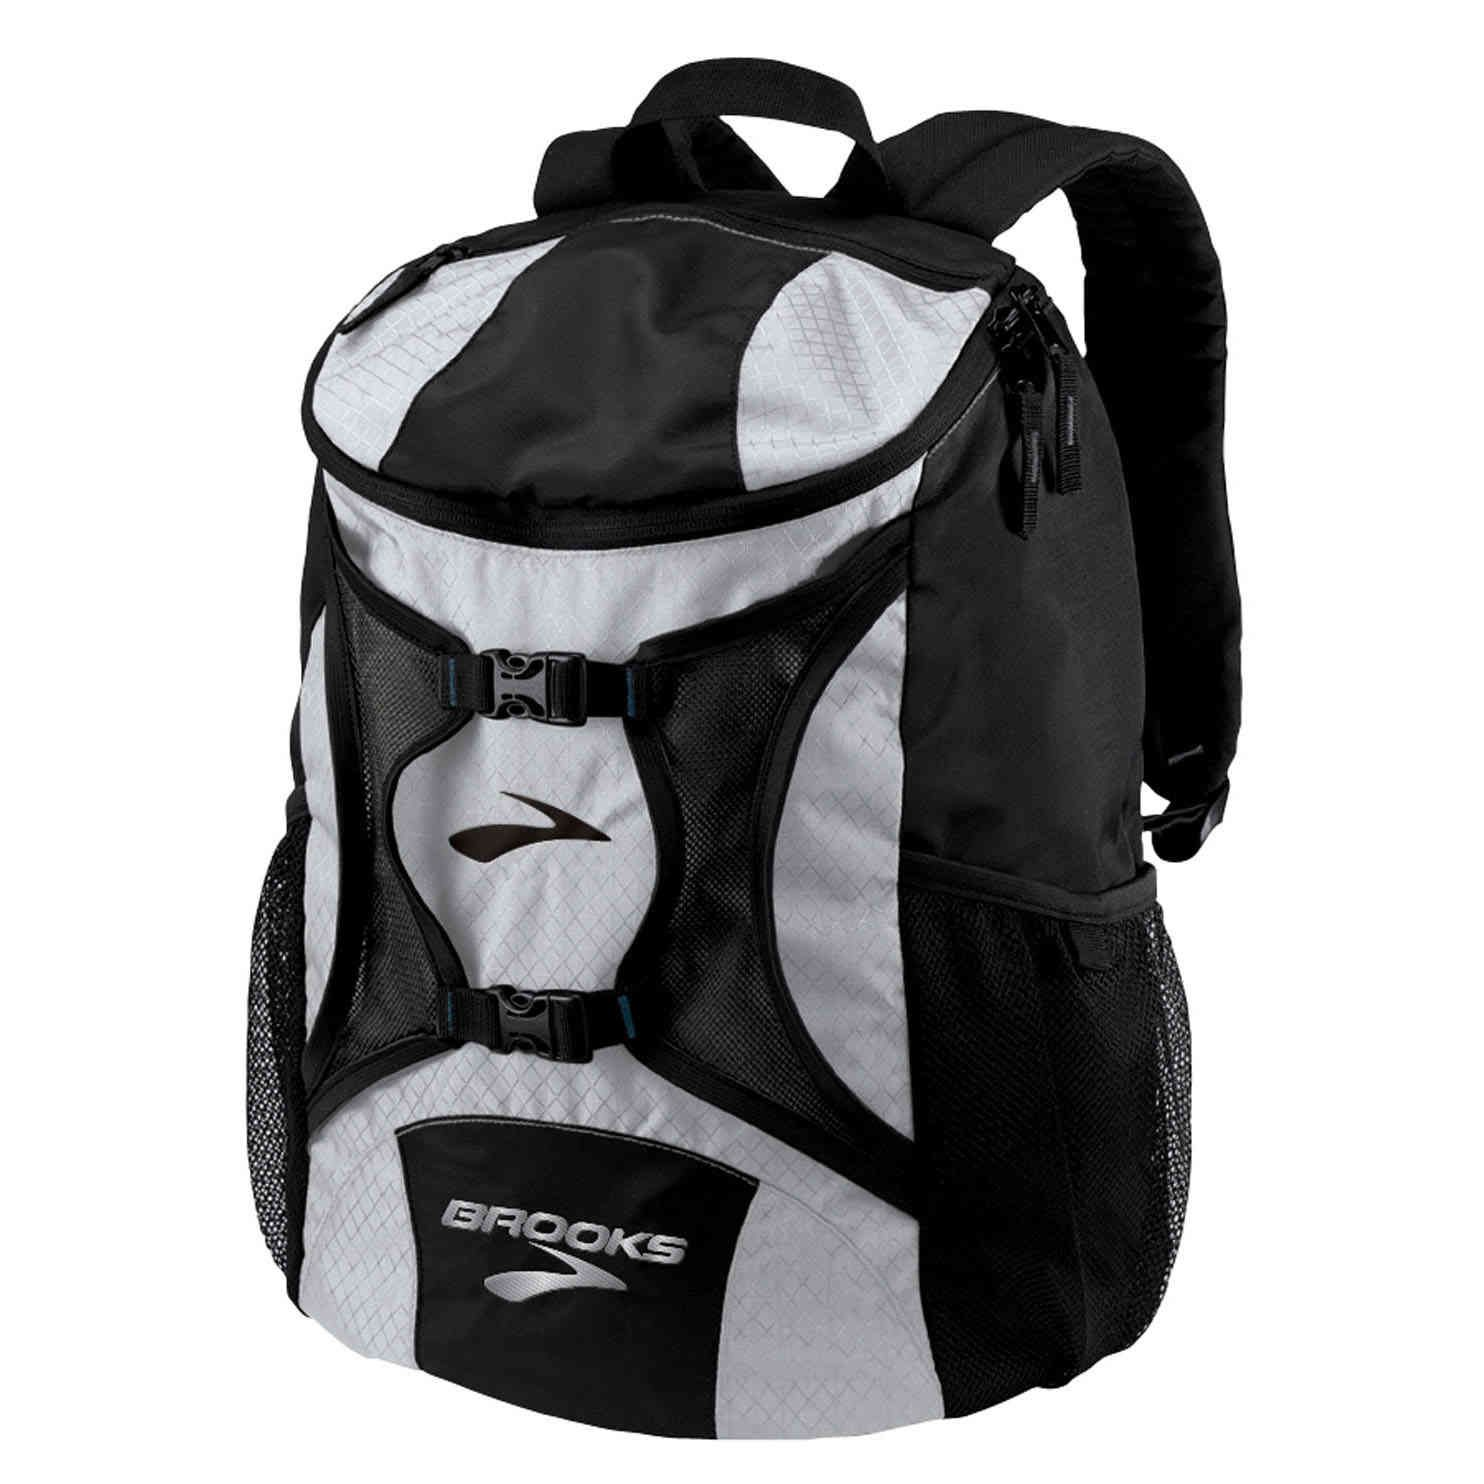 01064fb65d Podium Team Pack: backpack for running gear | BROOKS | Bags ...